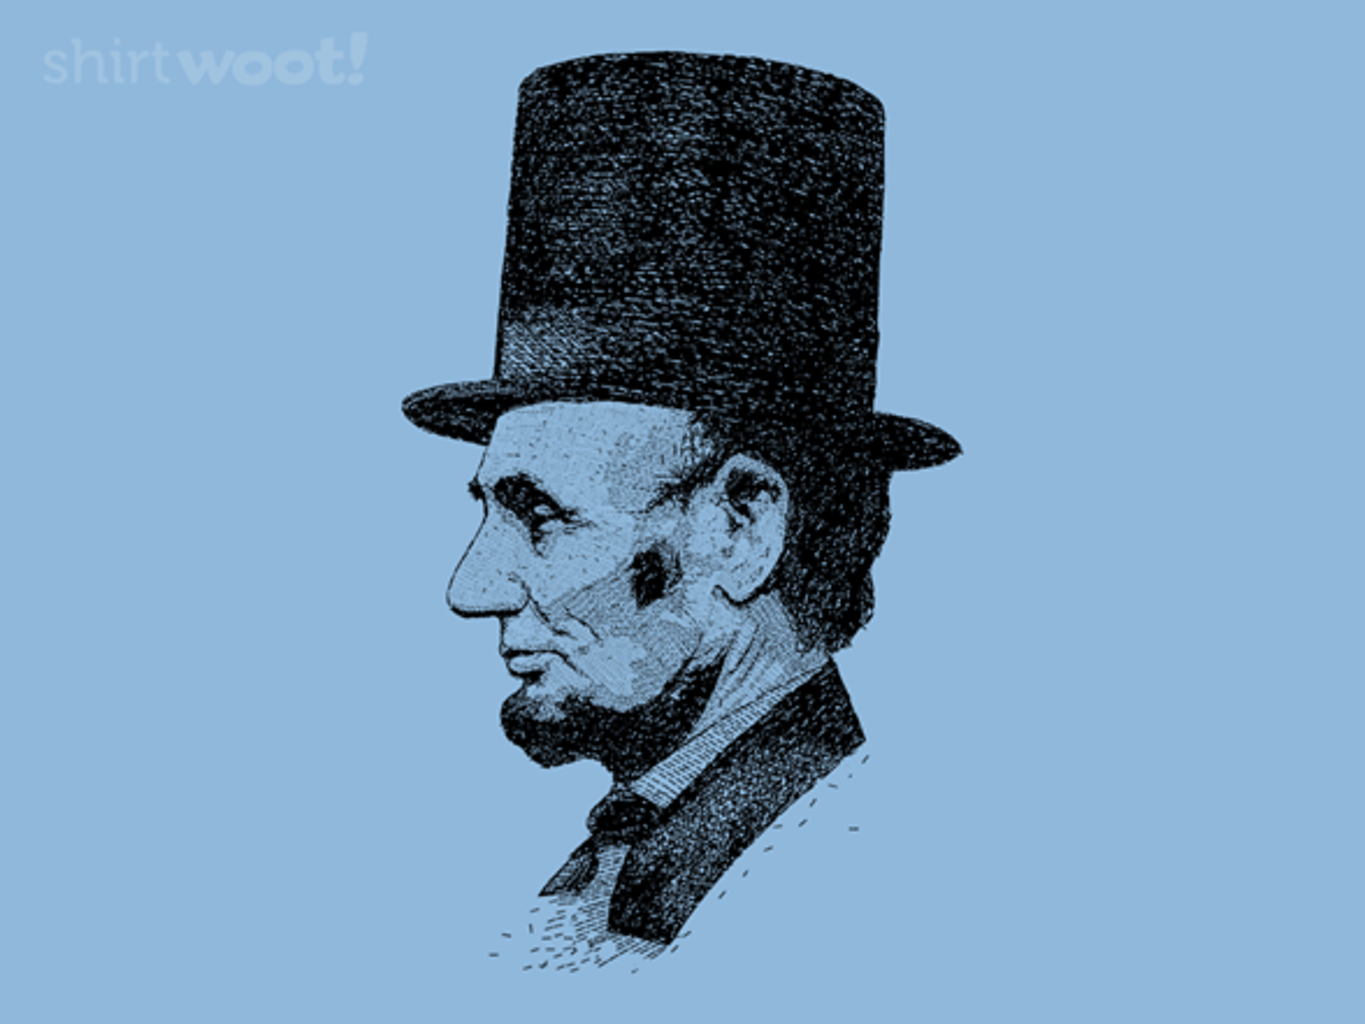 Woot!: Abraham Lincoln